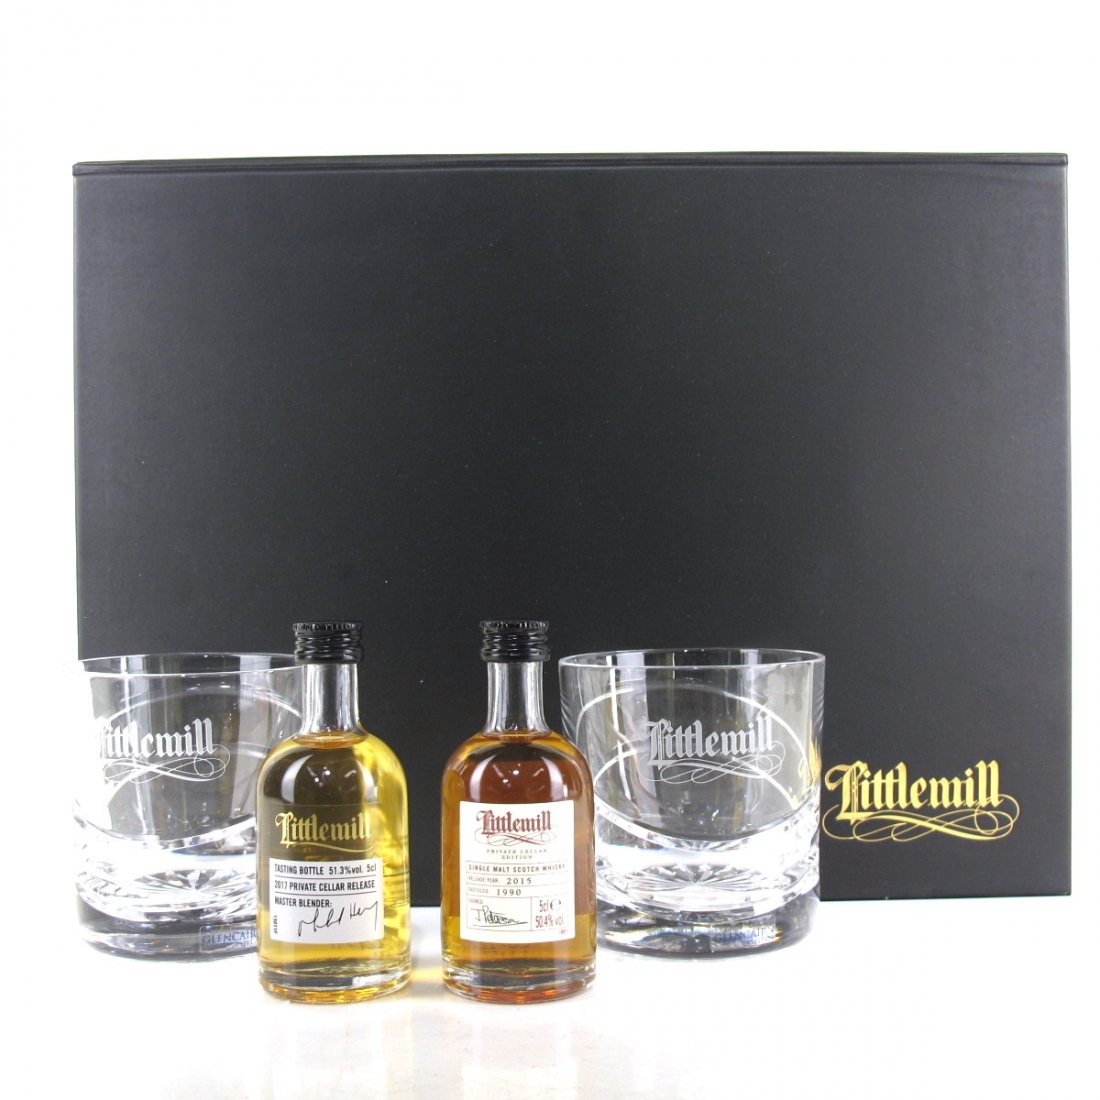 Littlemill Private Cellar Edition Miniatures Tasting Pack 2 x 5cl / Including Glasses